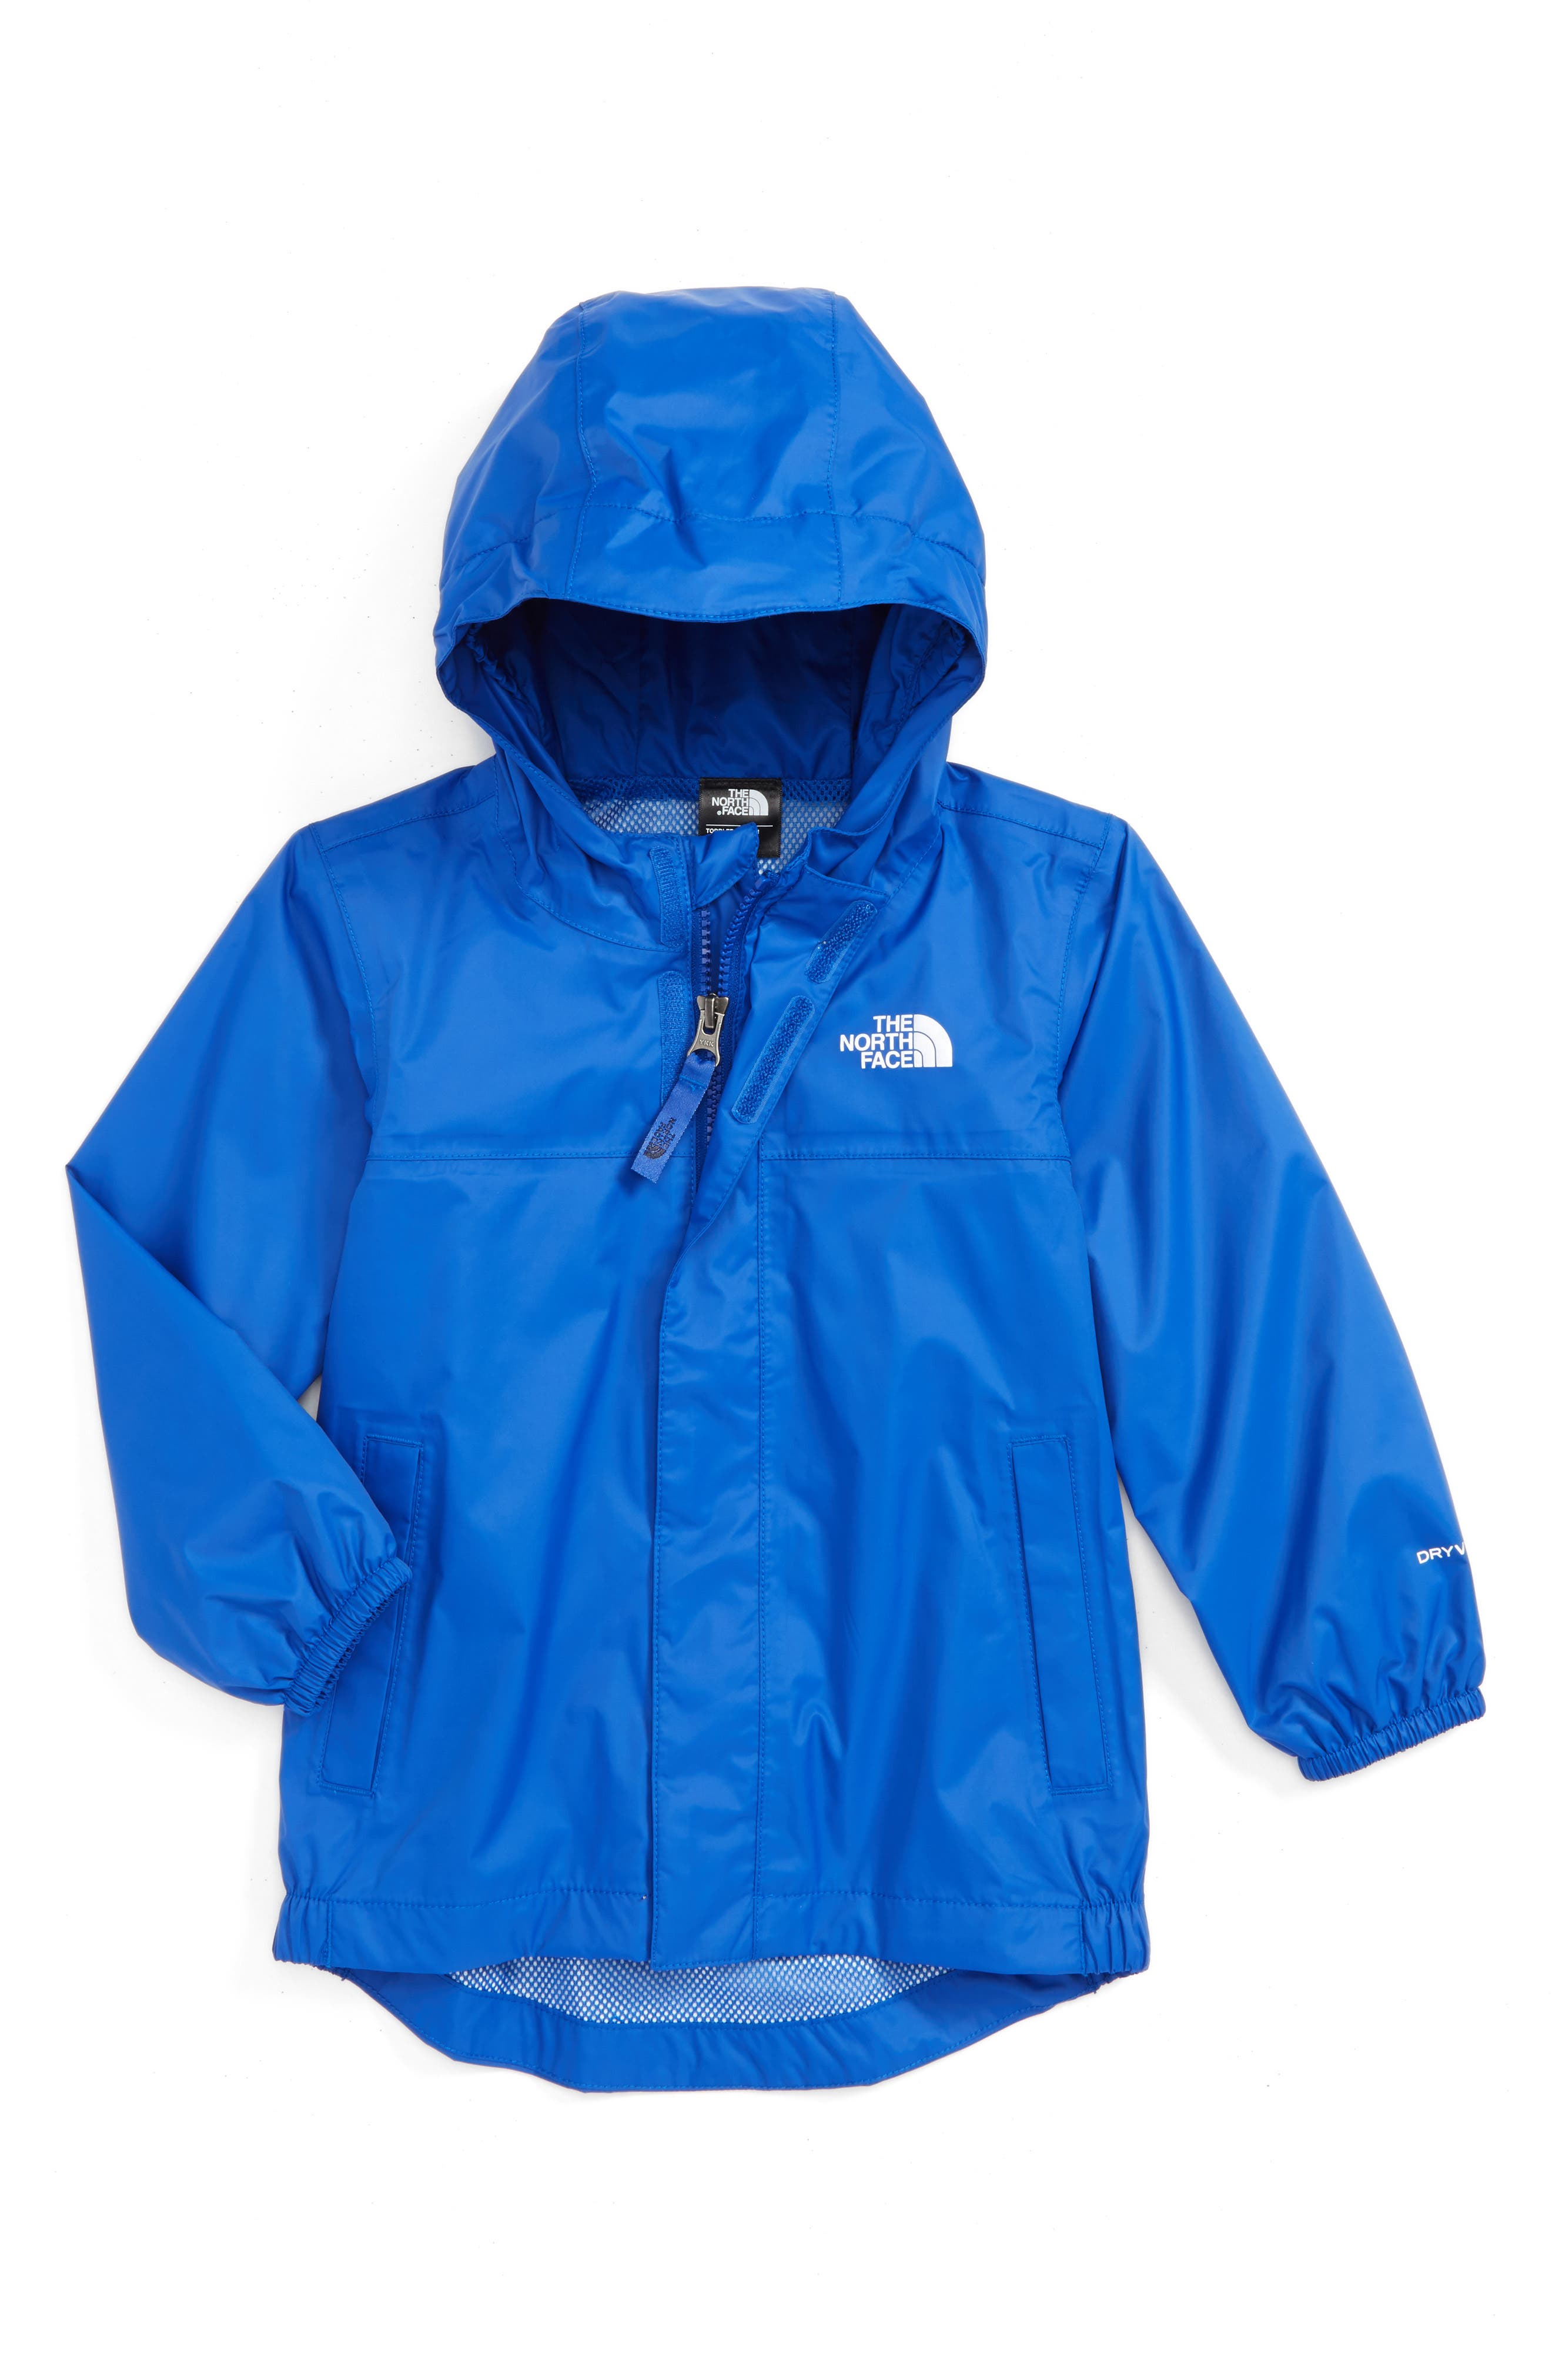 Alternate Image 1 Selected - The North Face Tailout Waterproof/Windproof Hooded Rain Jacket (Toddler Boys & Little Boys)